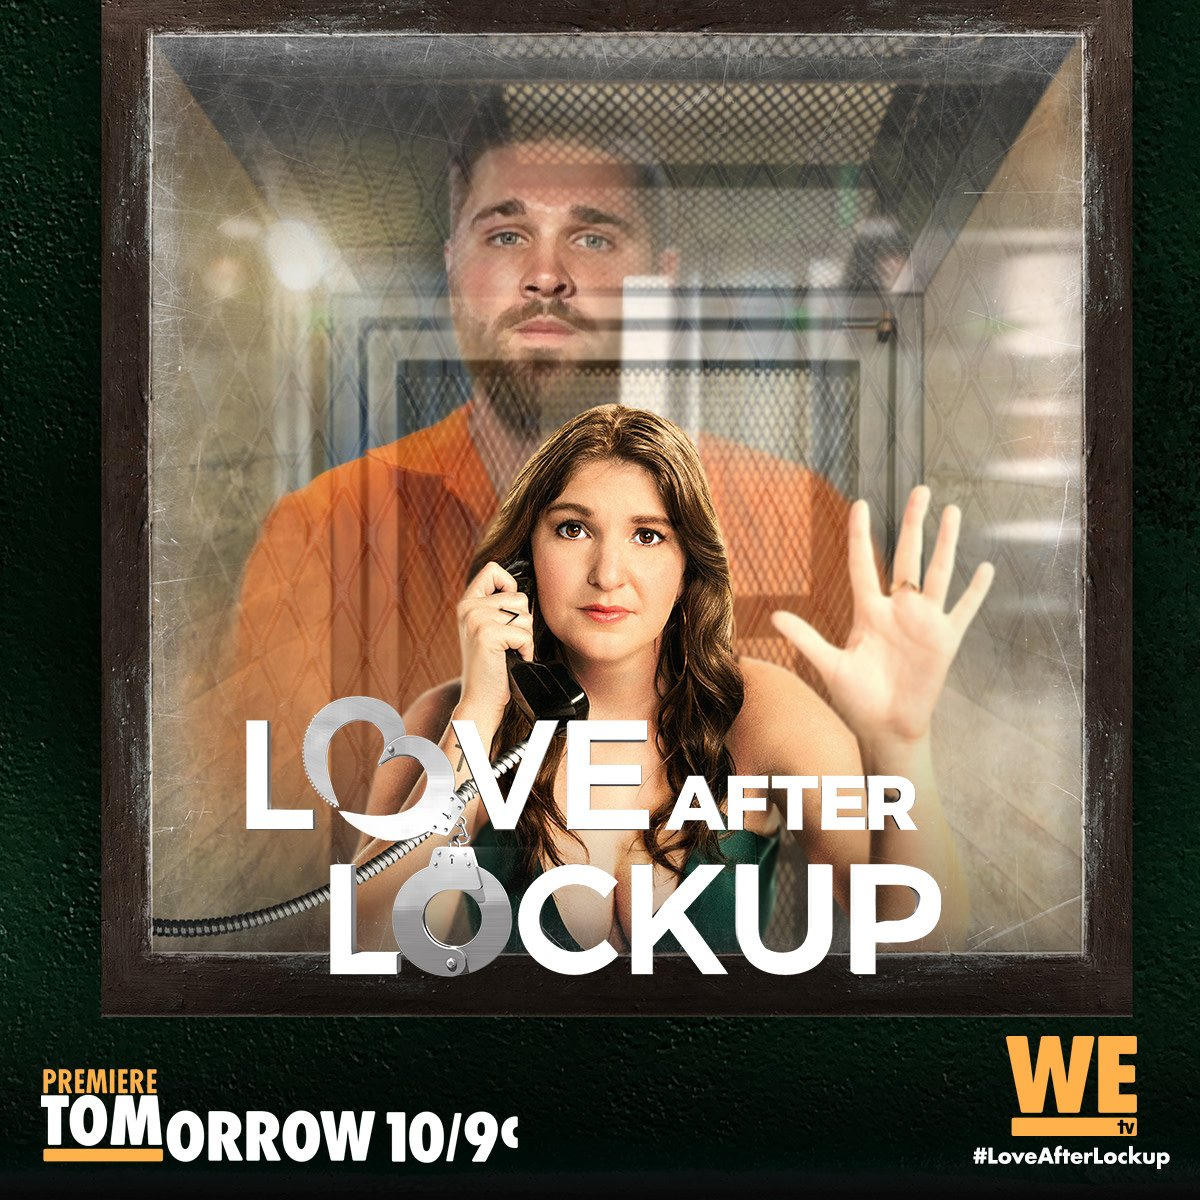 RT @WEtv: Their love is criminal. #LoveAfterLockup premieres TOMORROW at 10/9c! https://t.co/ZbCNc1IzM5